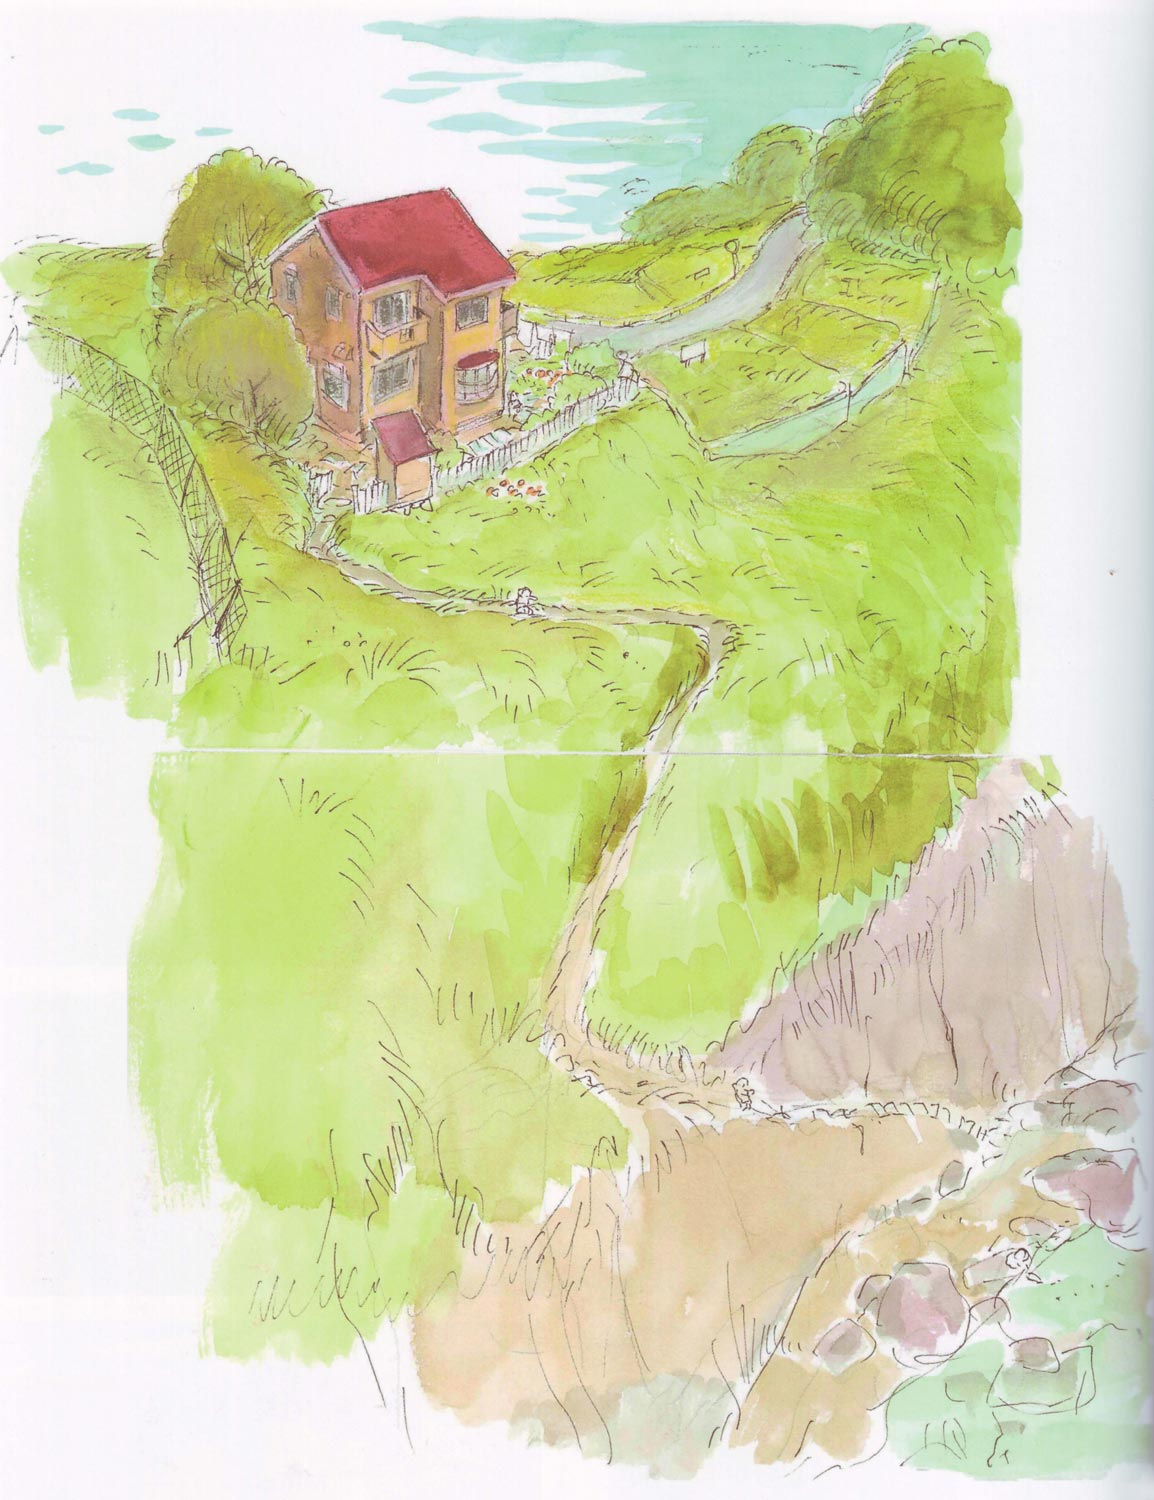 ponyo_on_the_cliff_by_the_sea_background_12.jpg